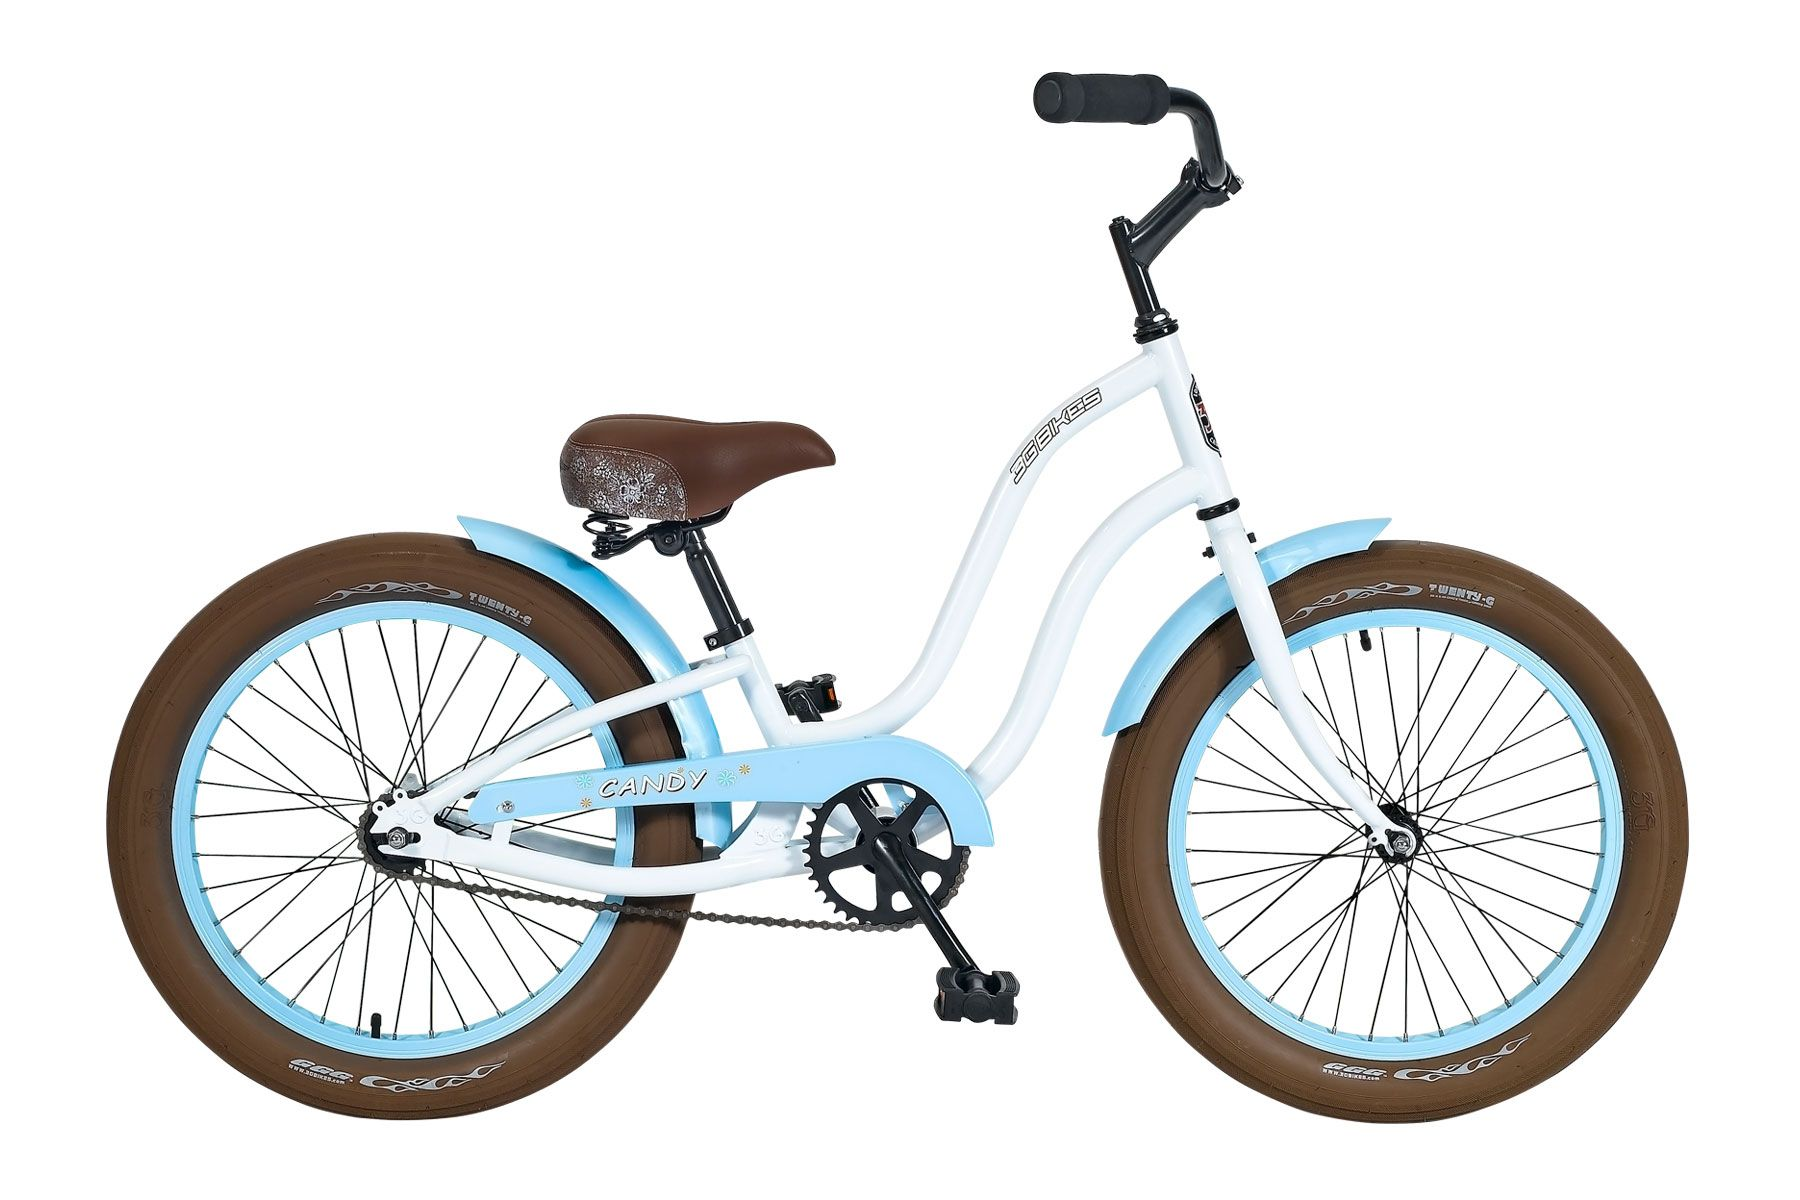 3g Bikes S Candy 20 Beach Cruiser Bicycle In White And Baby Blue